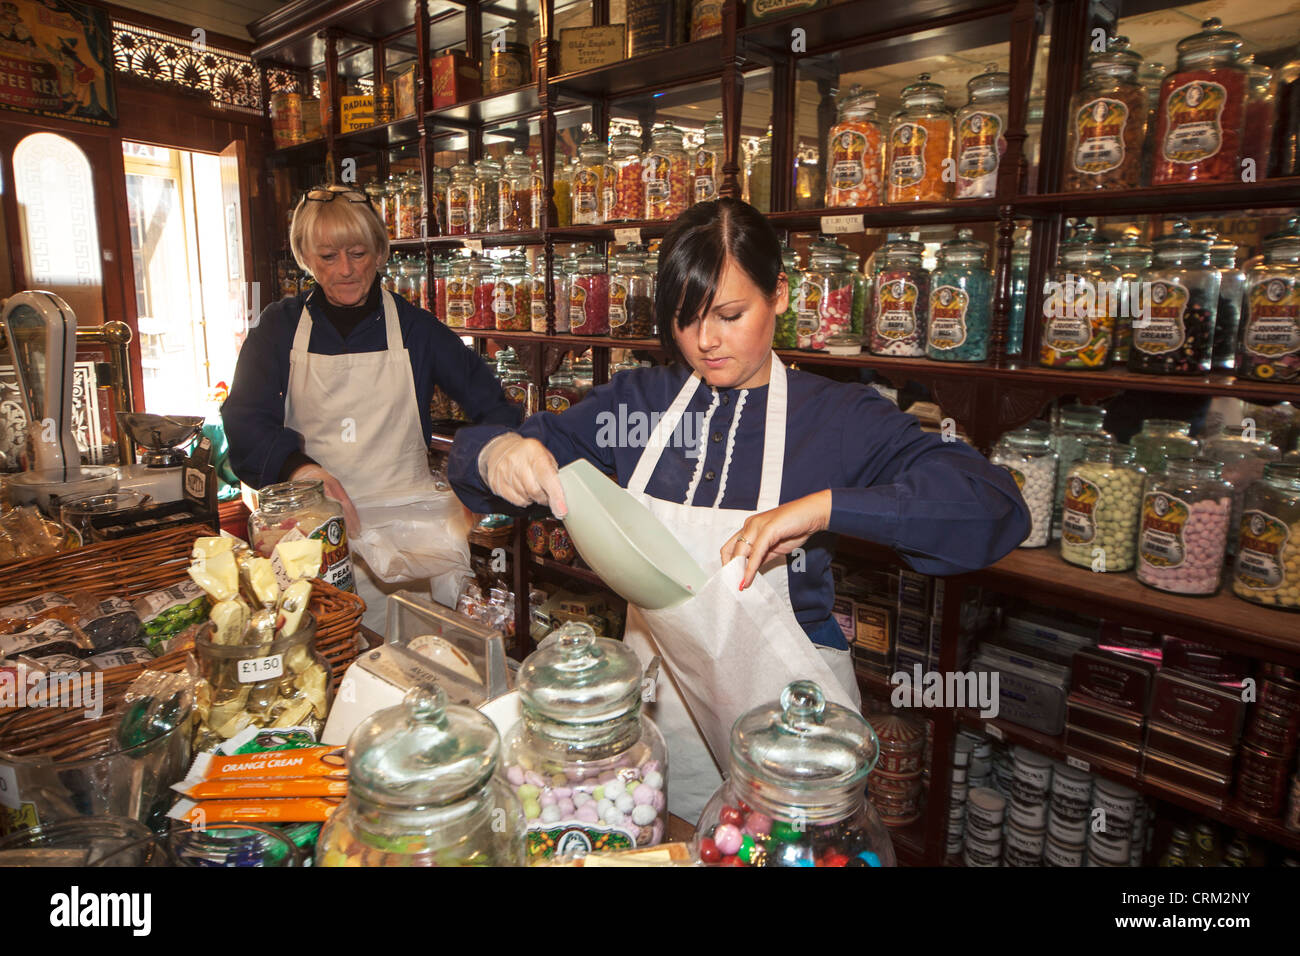 The Sweet Shop, Beamish Open Air Museum, County Durham - Stock Image